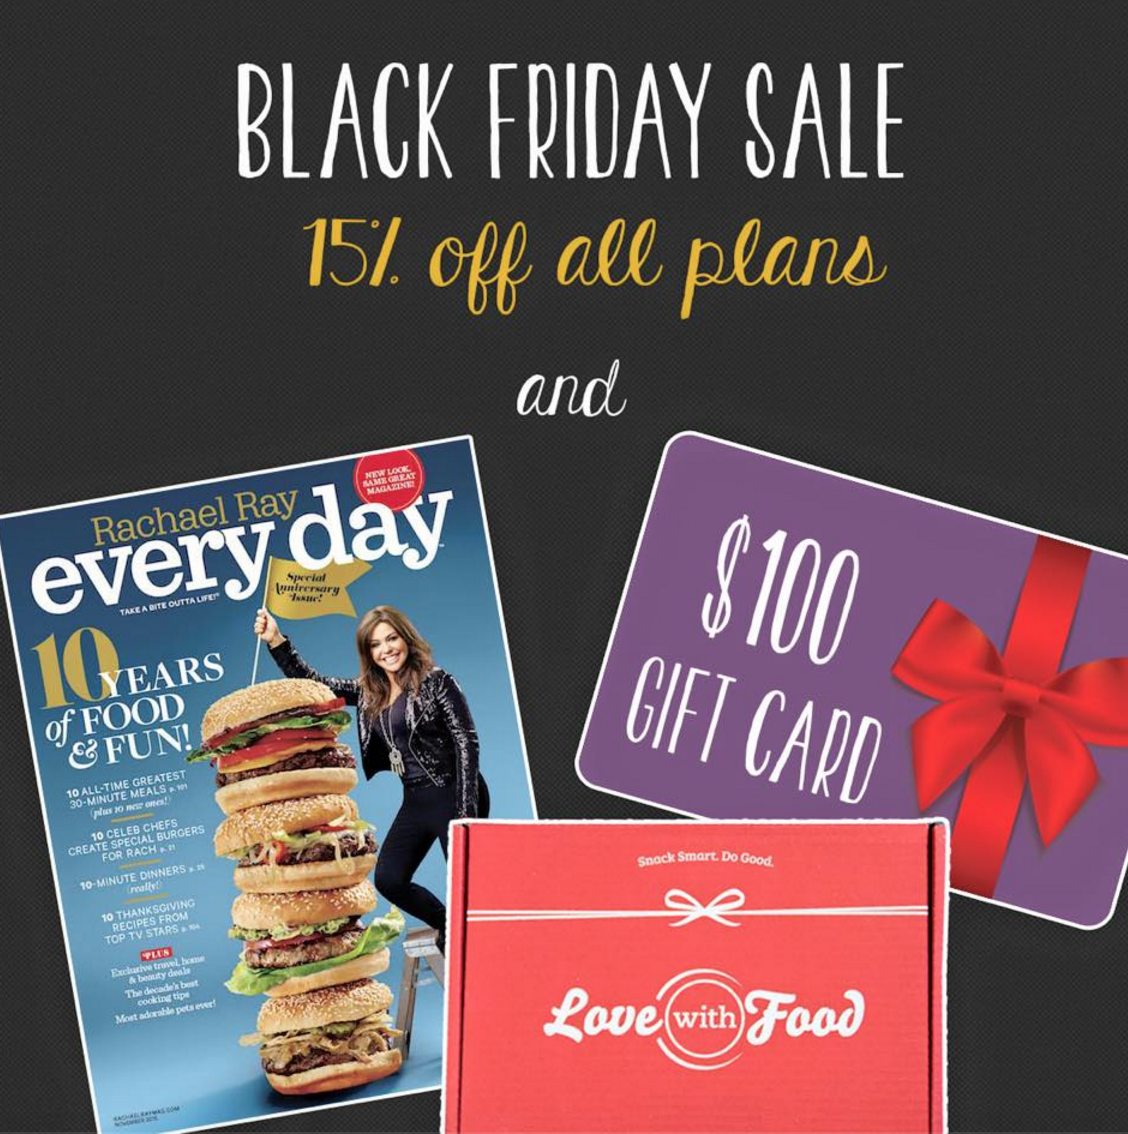 Love with Food Black Friday Sale!